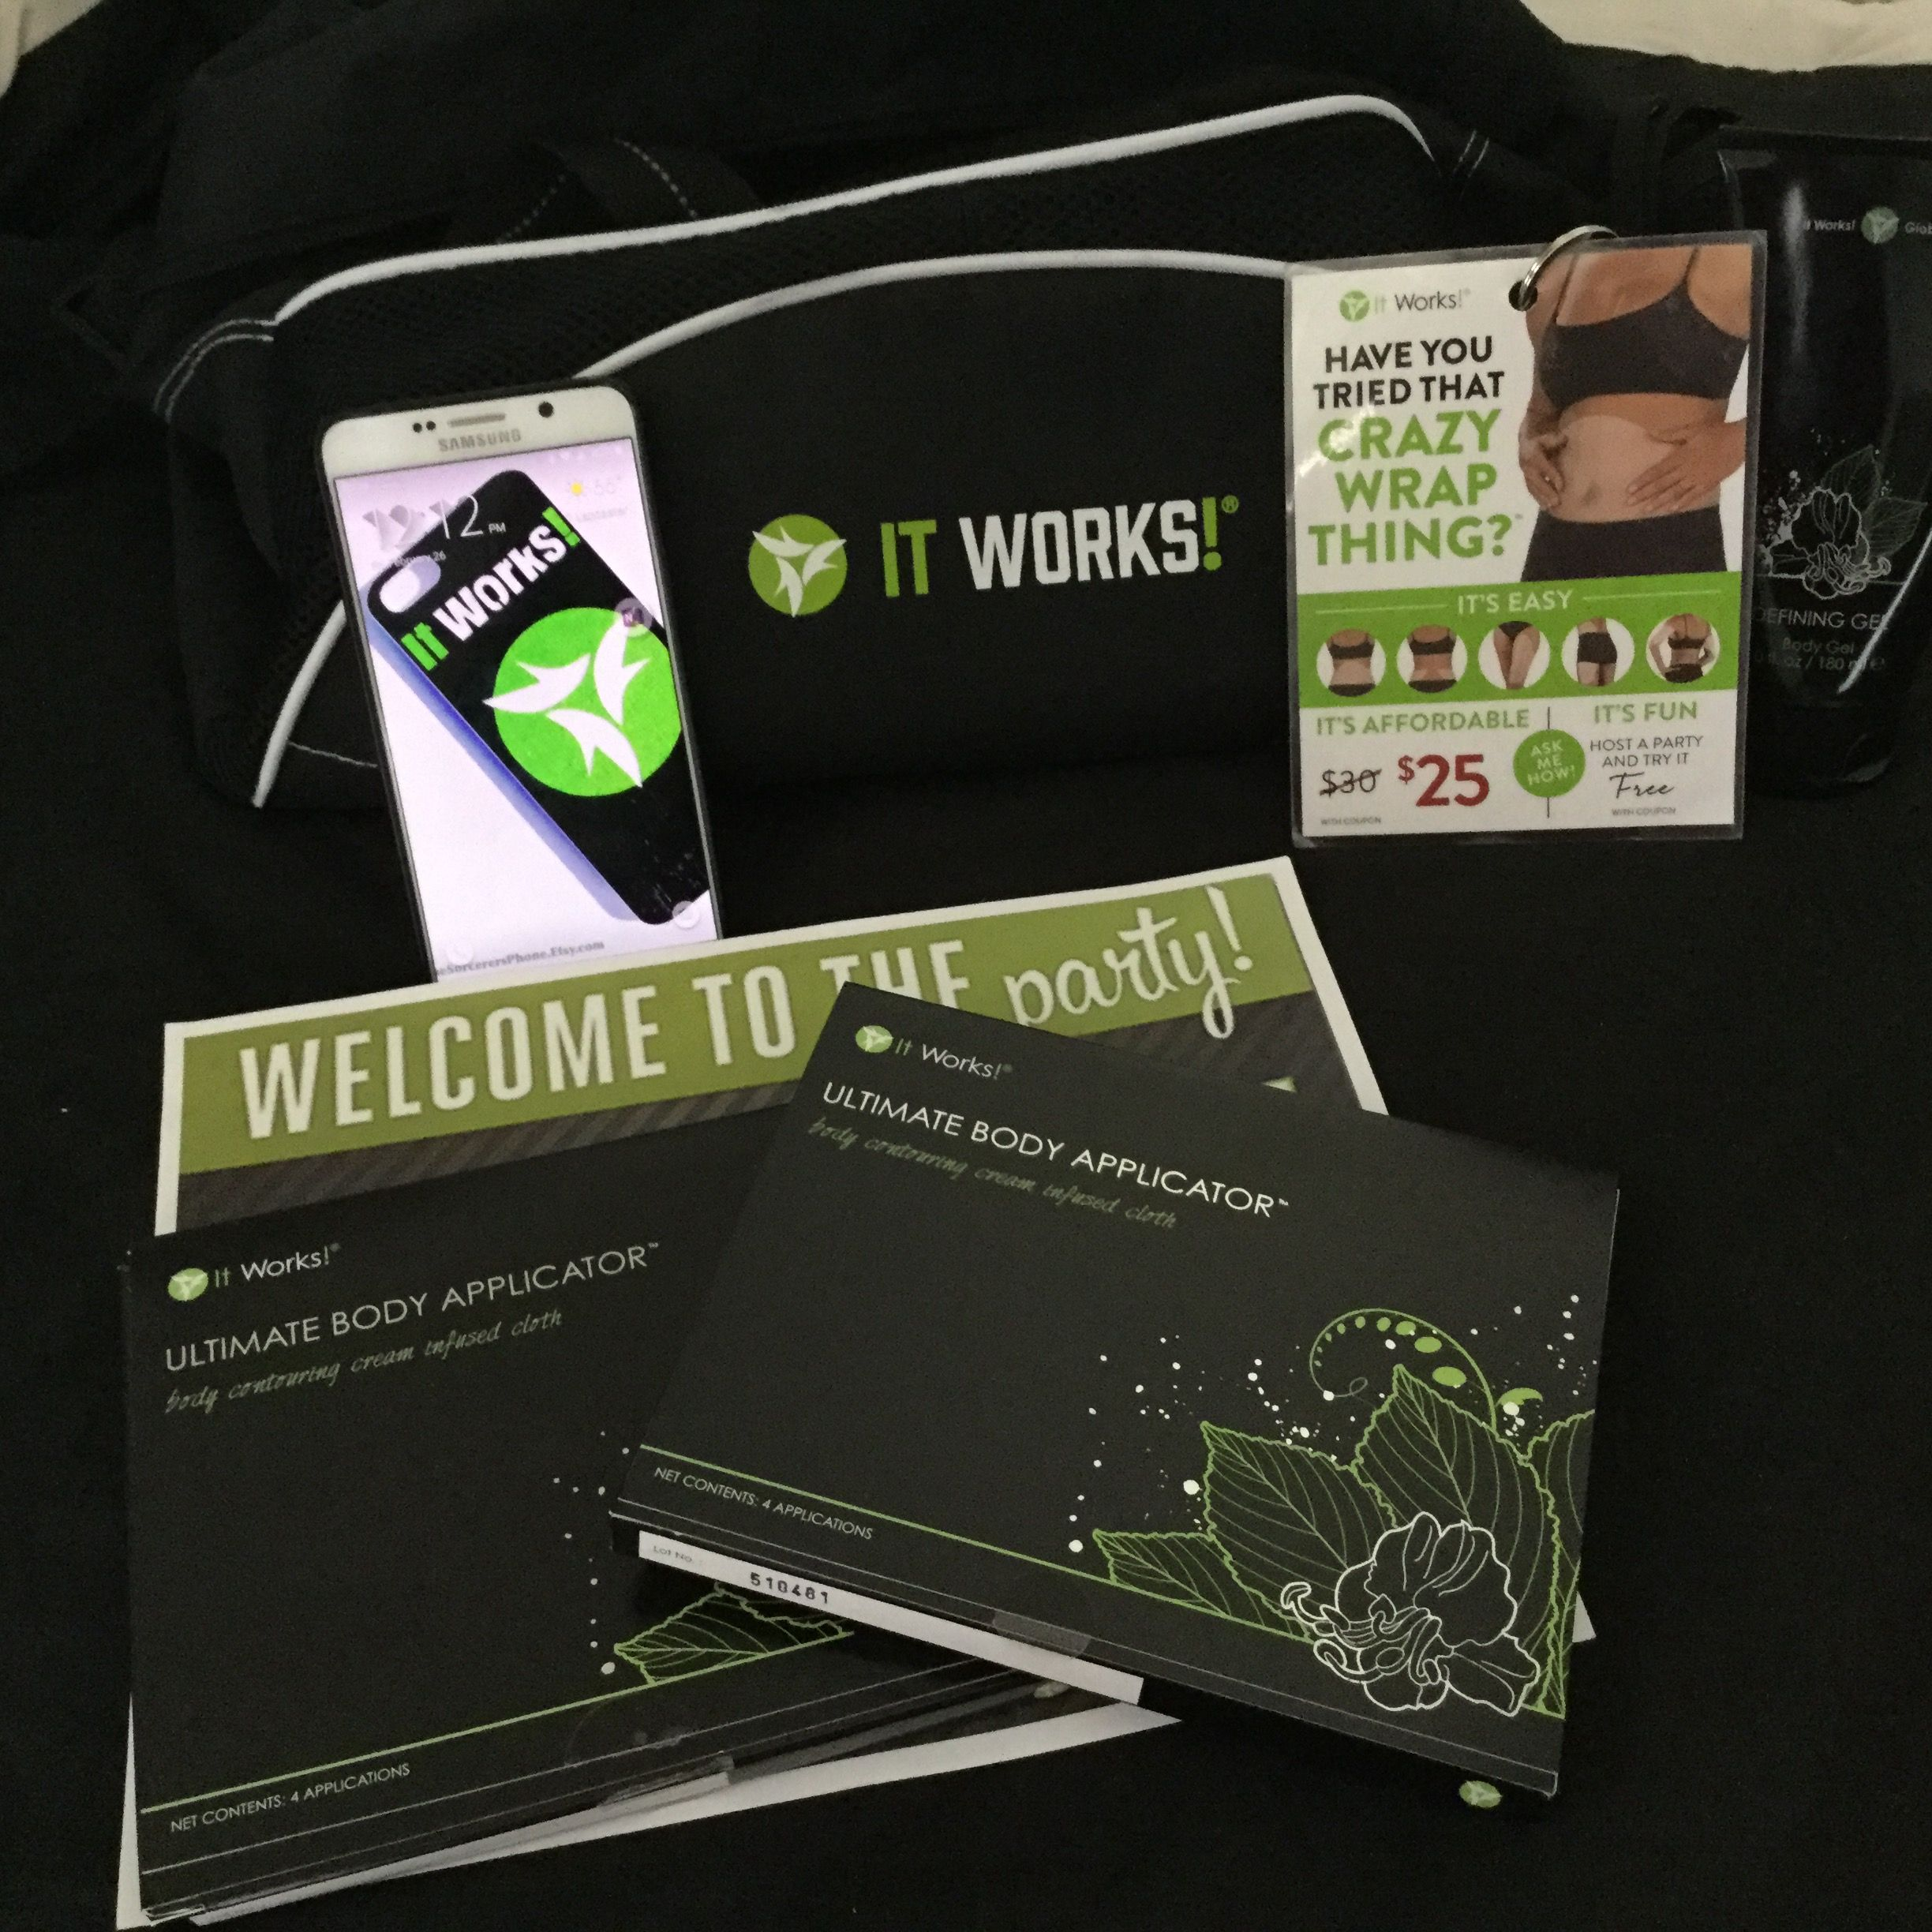 ⚡️Step 1️⃣ Join the #Party  Step 2️⃣ #Wrap as many people as you can  Step 3️⃣ Find other who want to join the party All it takes is sharing with others in person or from your cell phone  & the drive to want to help others & be #successful & you Will make extra money Sign up by February 29th & you could earn an extra $1000 #bonus by April Message me to get signed up! Or Text Info 661-478-9257